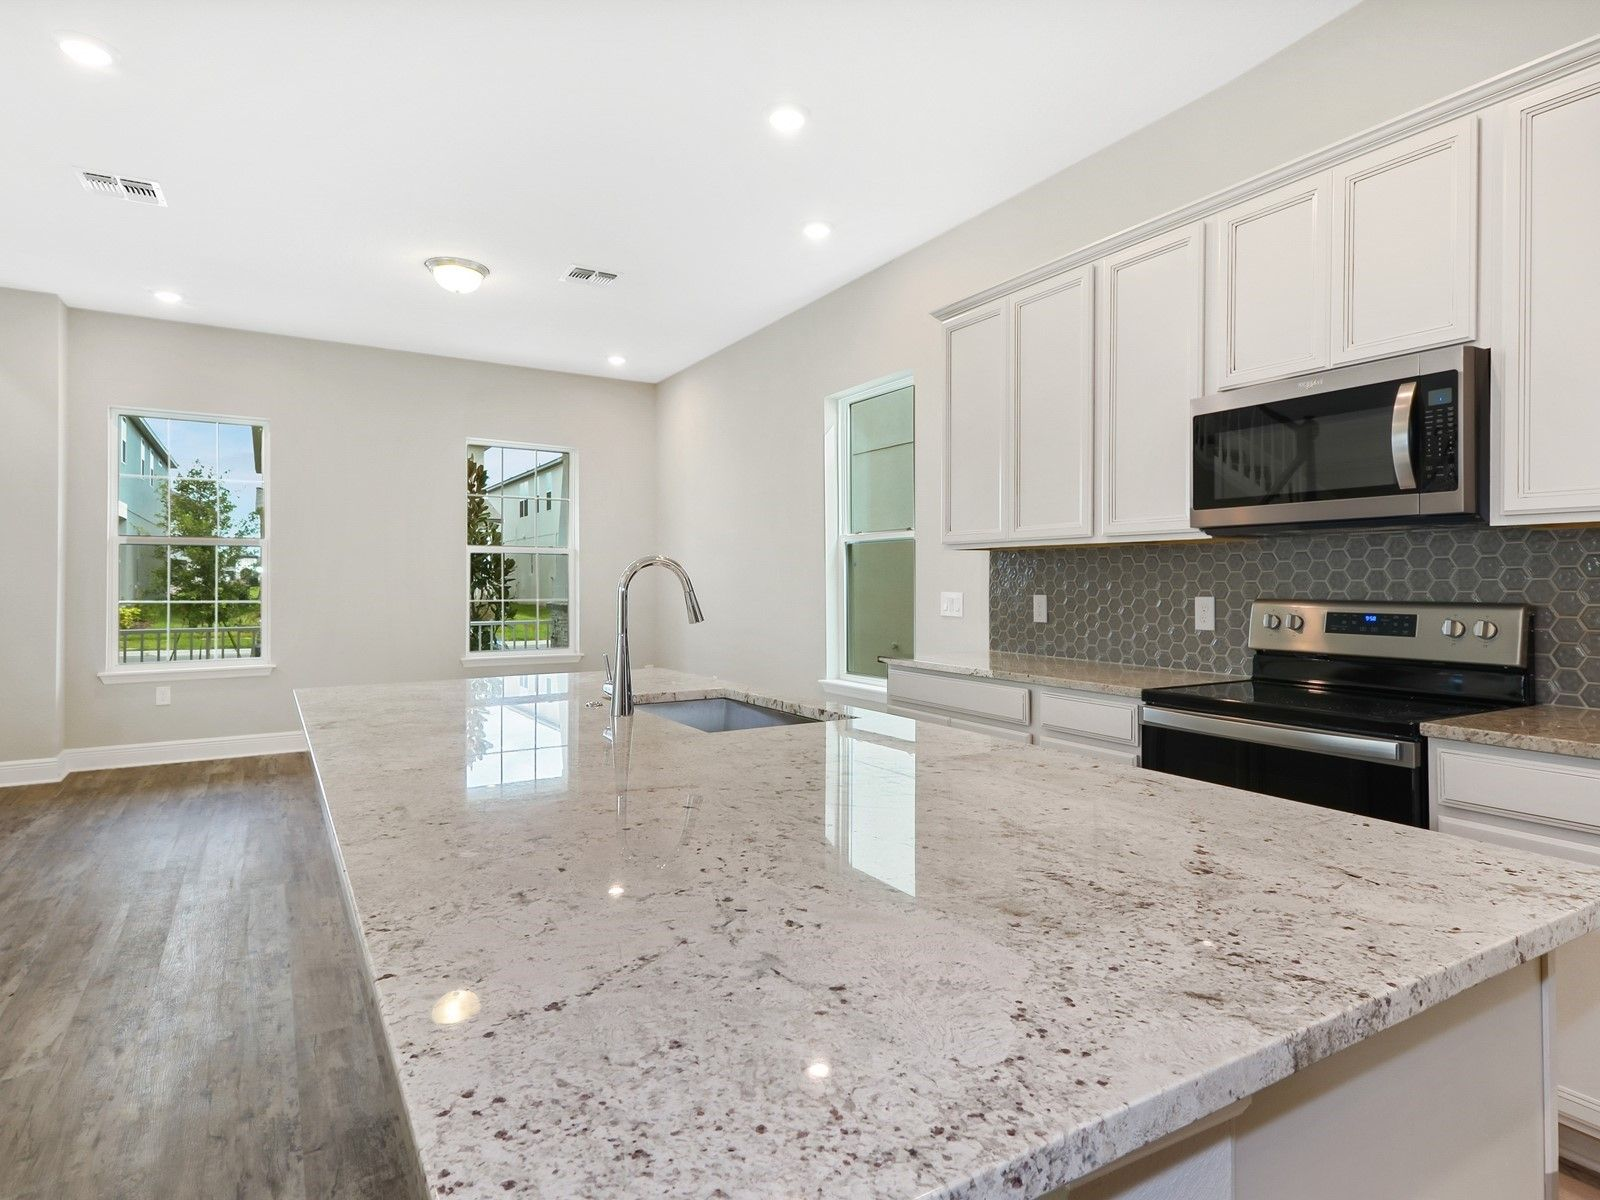 Kitchen featured in the Whitman II By Meritage Homes in Orlando, FL